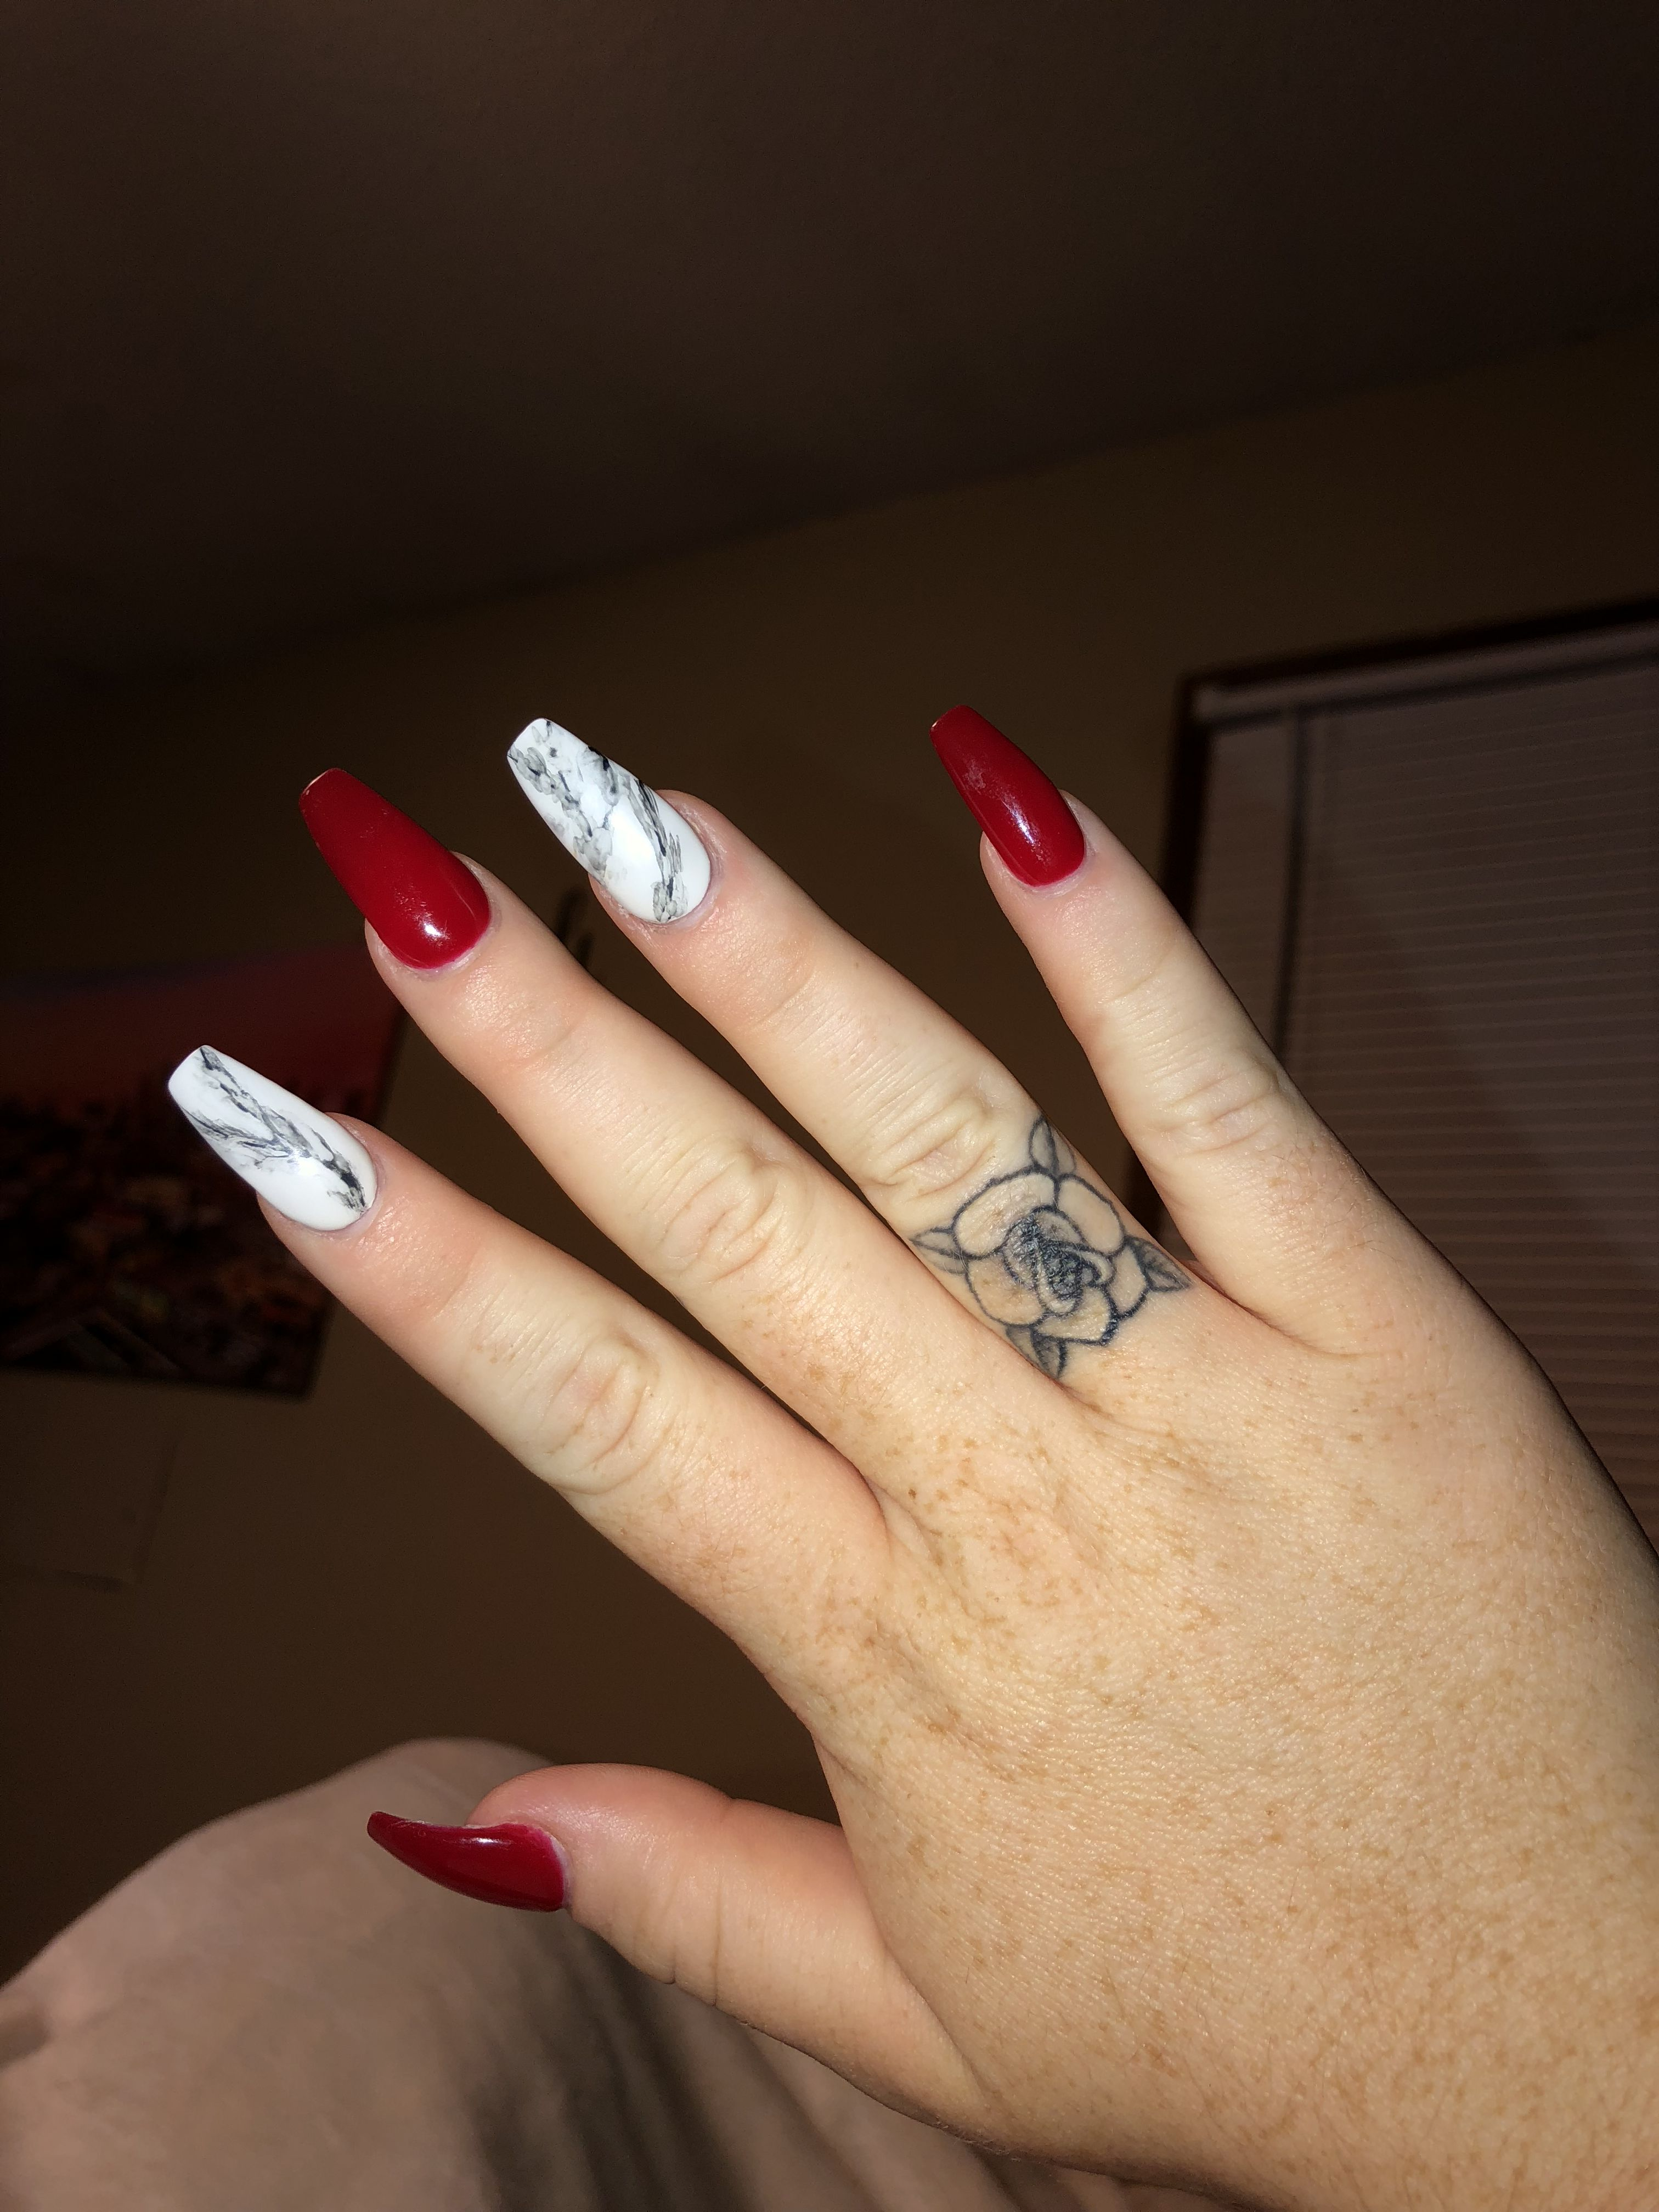 Long Acrylic Coffin Nails Red Acrylic Nails White Acrylic Nails Black Marble Nails